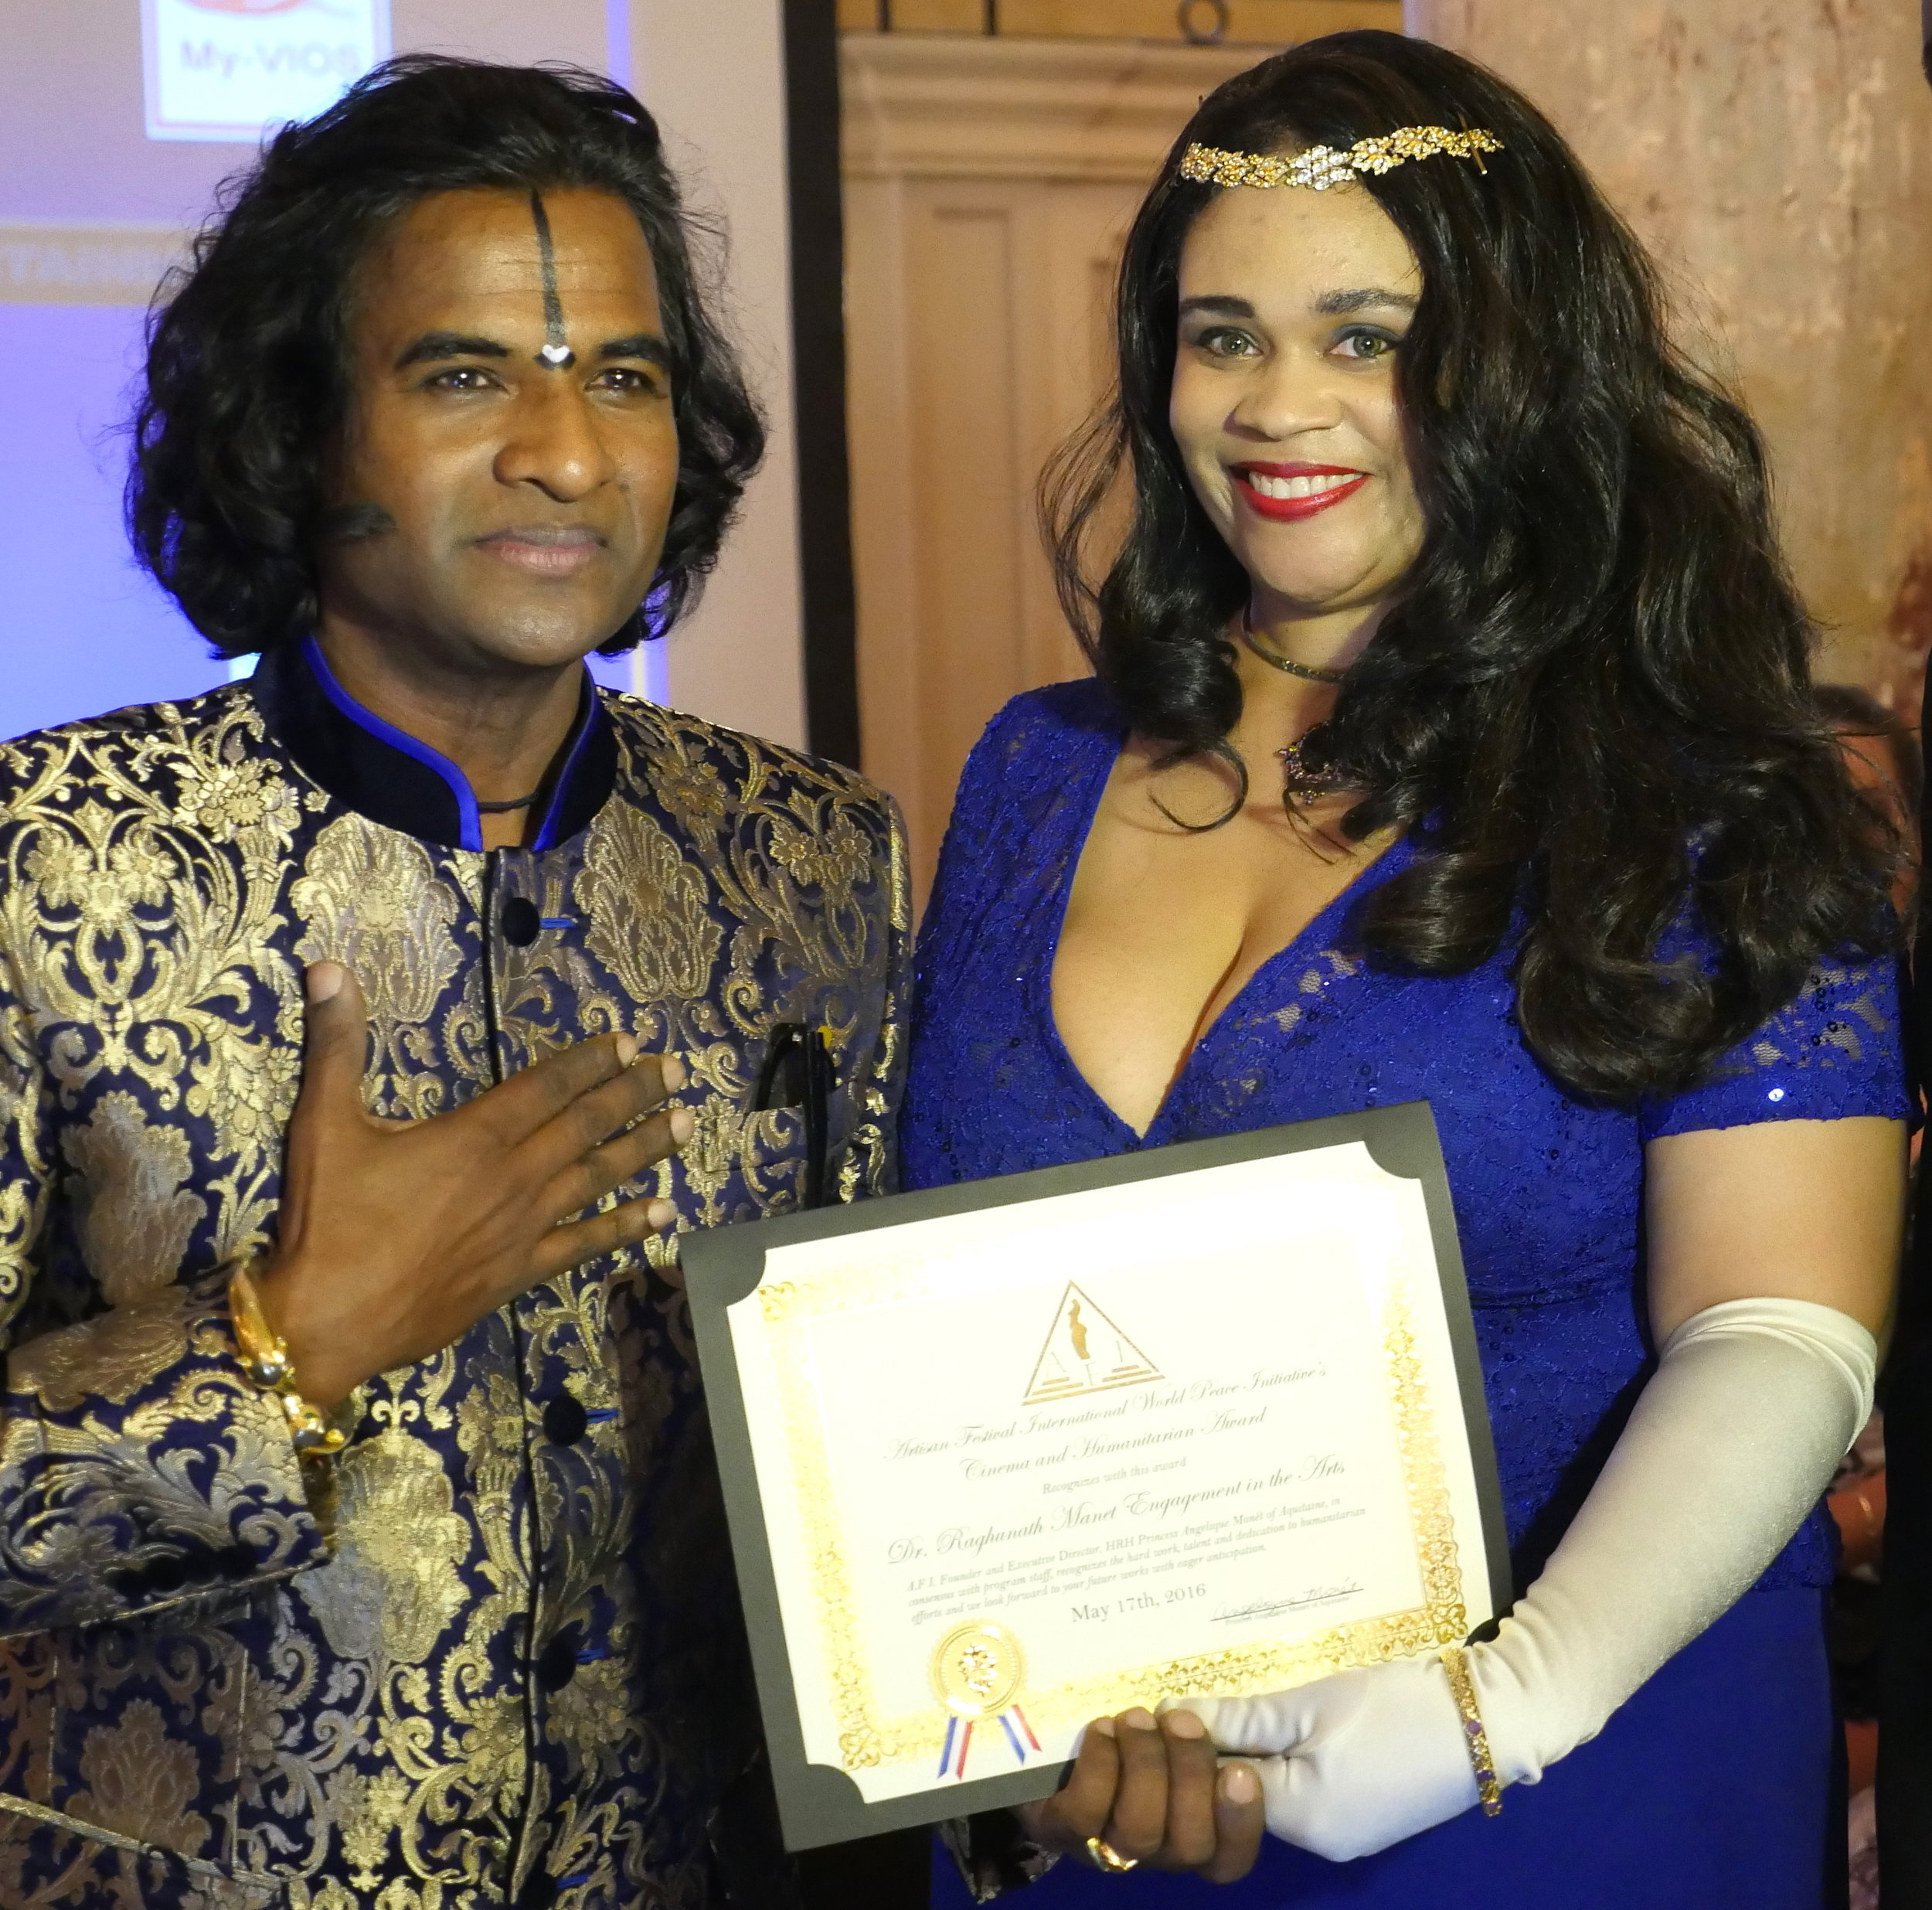 A.F.I./W.P.I. Founder HRH Princess Angelique Monét with Dr. Raghunath Manet who received the 2016 Humanitarian Award for Engagement in the Arts.